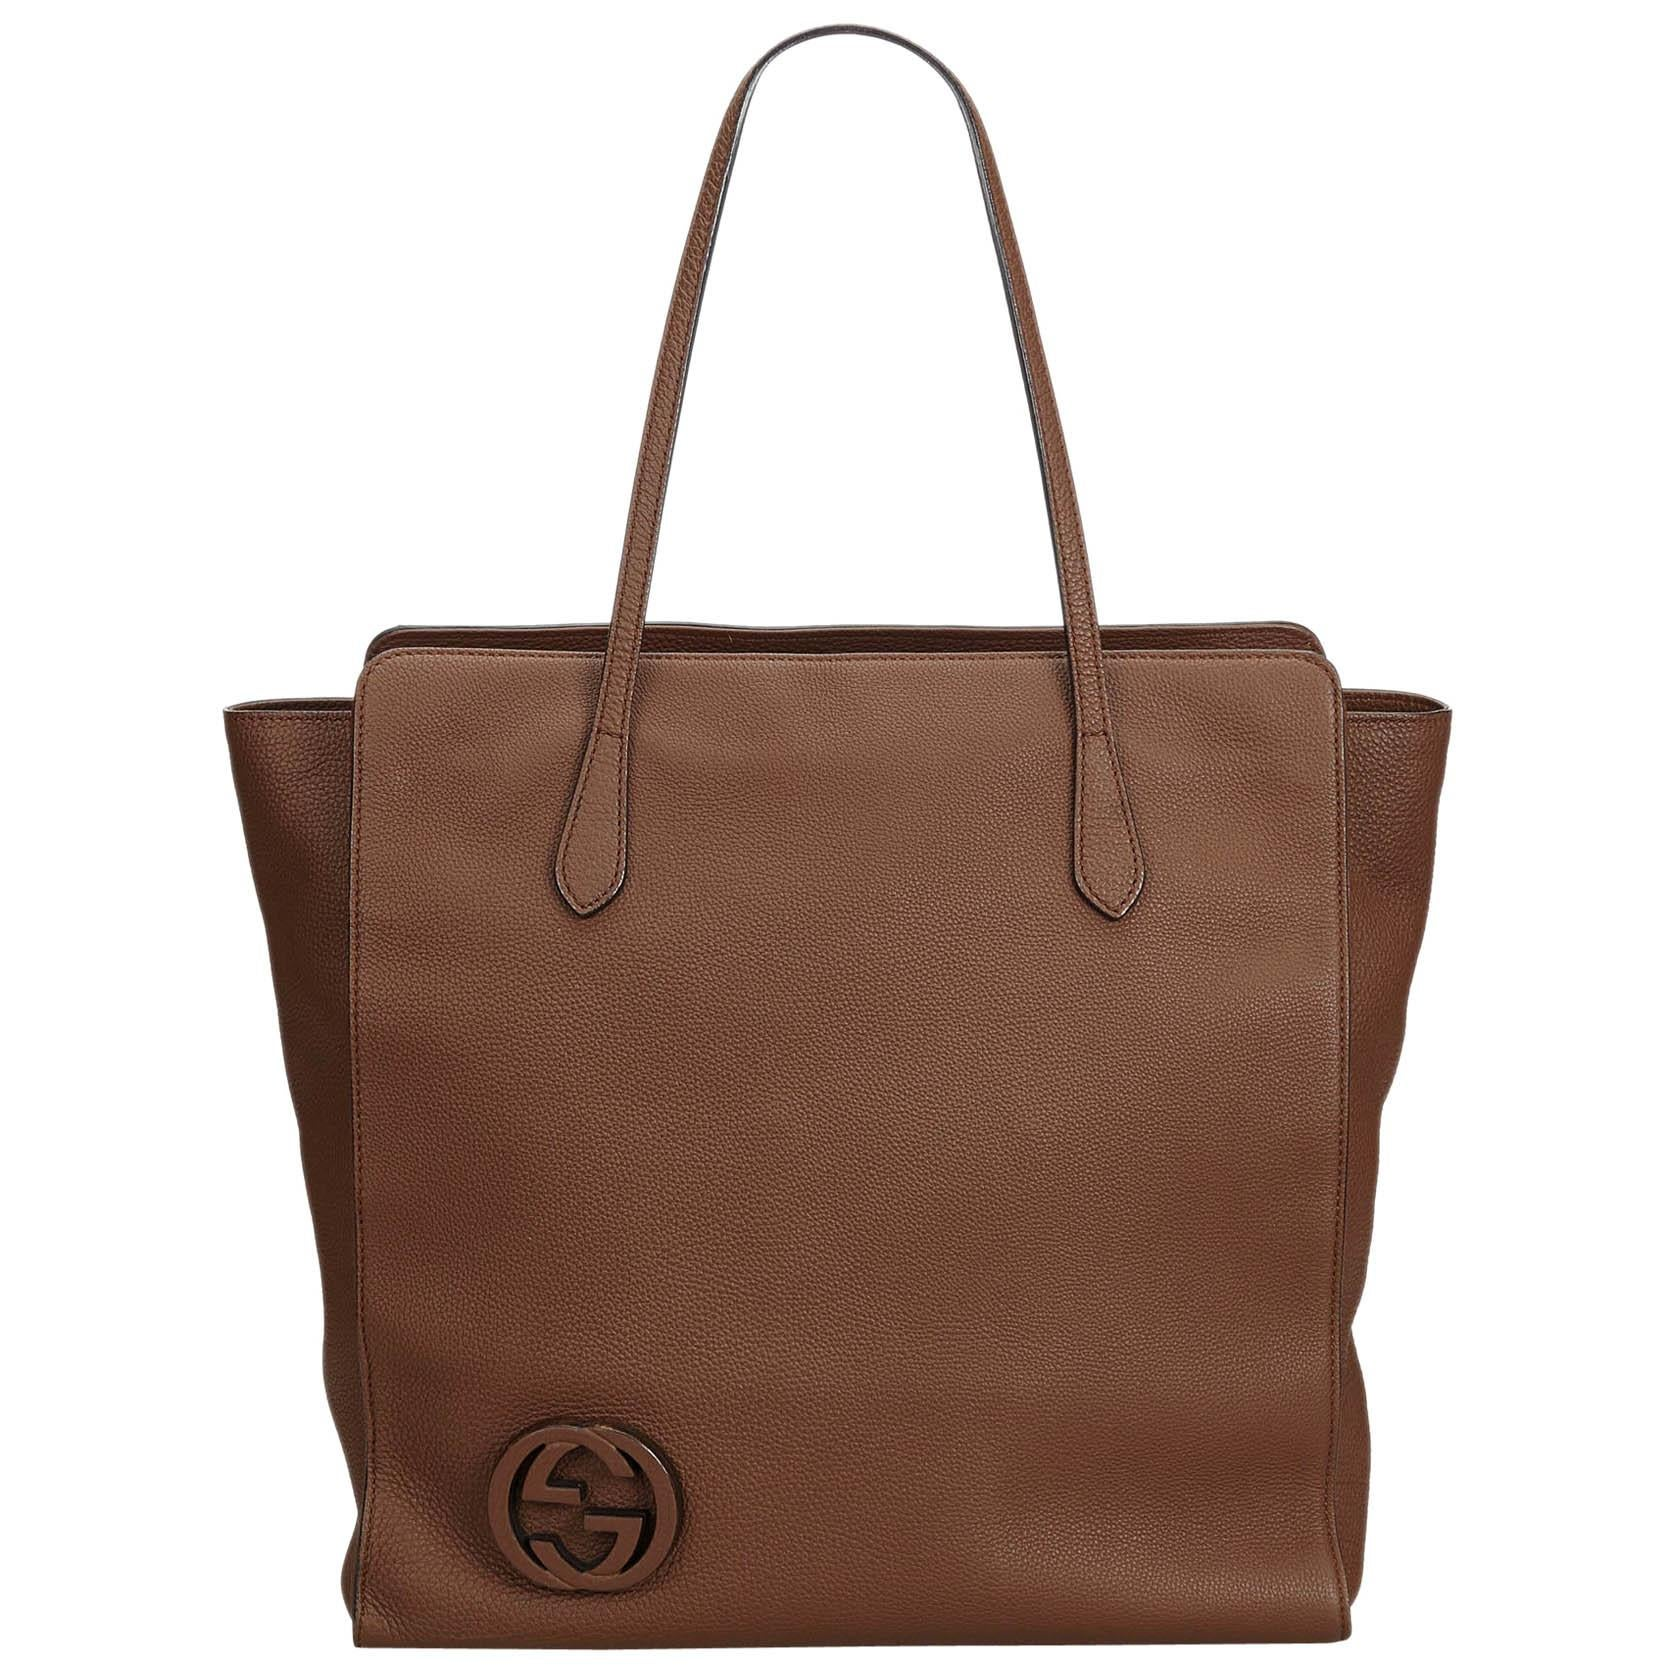 1e3dc346e7c3 Vintage Gucci Tote Bags - 314 For Sale at 1stdibs